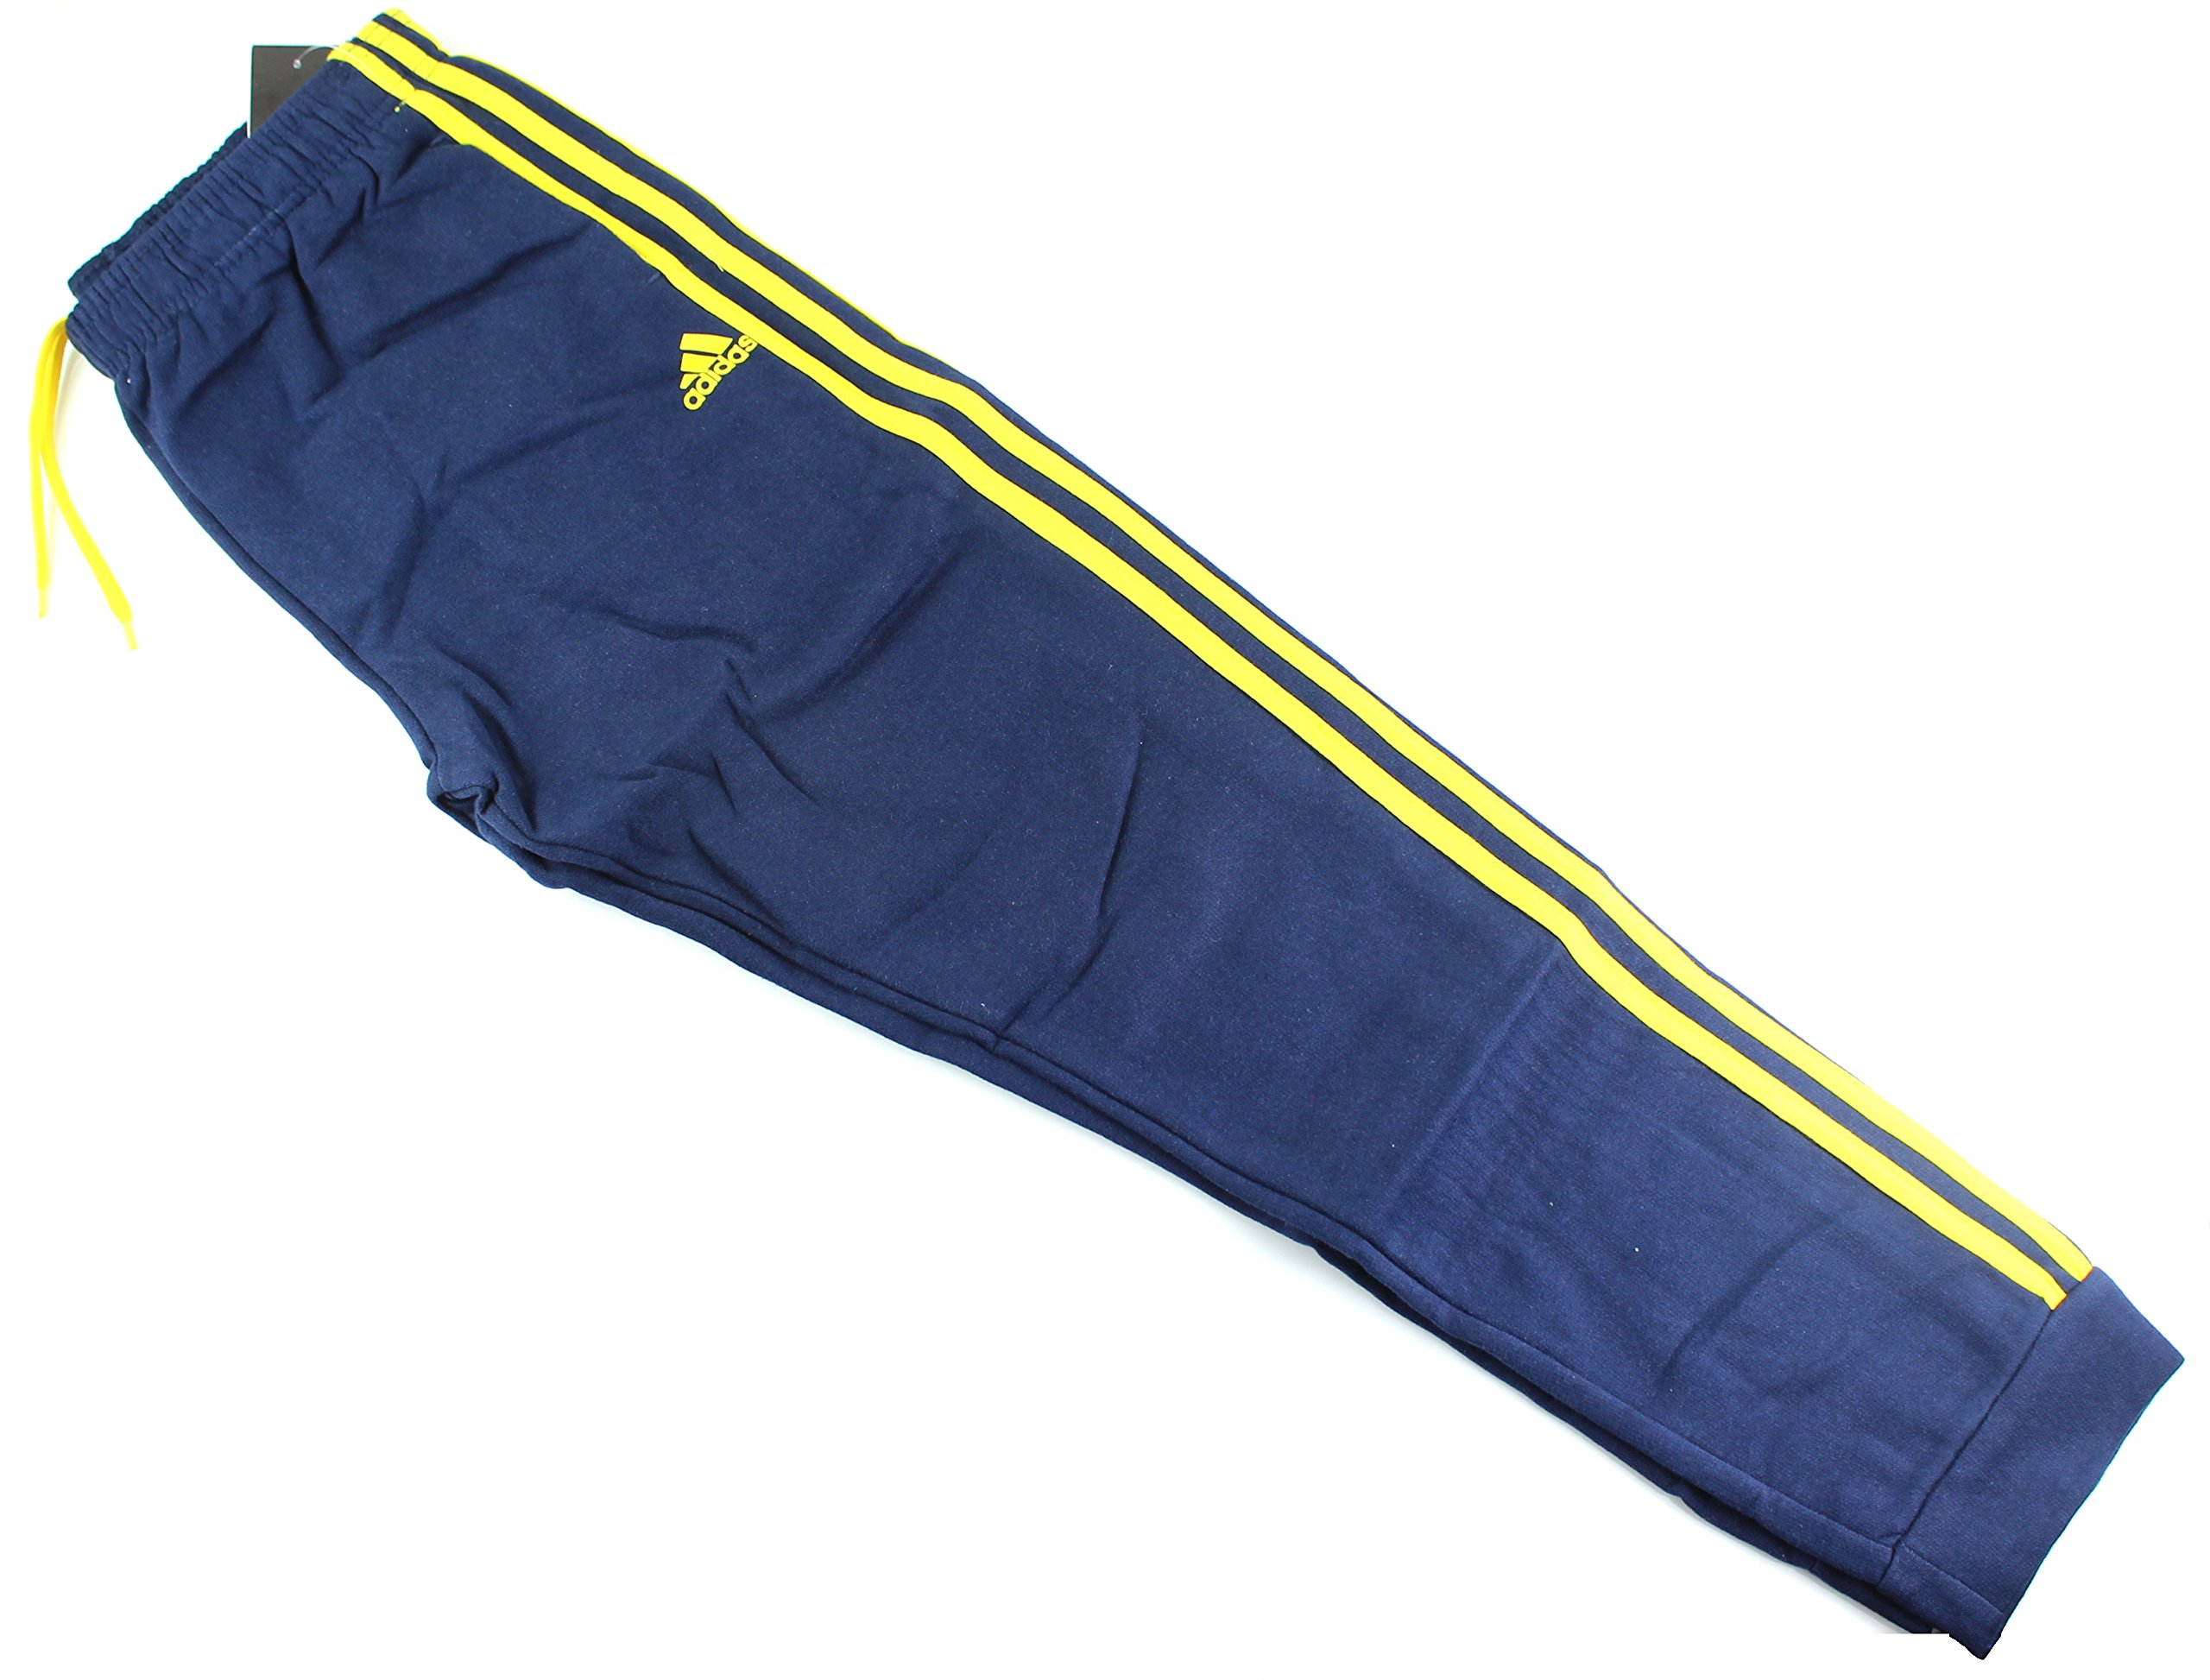 Outerstuff adidas Youth Fleece Collection (Youth Xlarge 18/20, Fleece Tapered Hem Sweatpants, Navy/Yellow) by Outerstuff